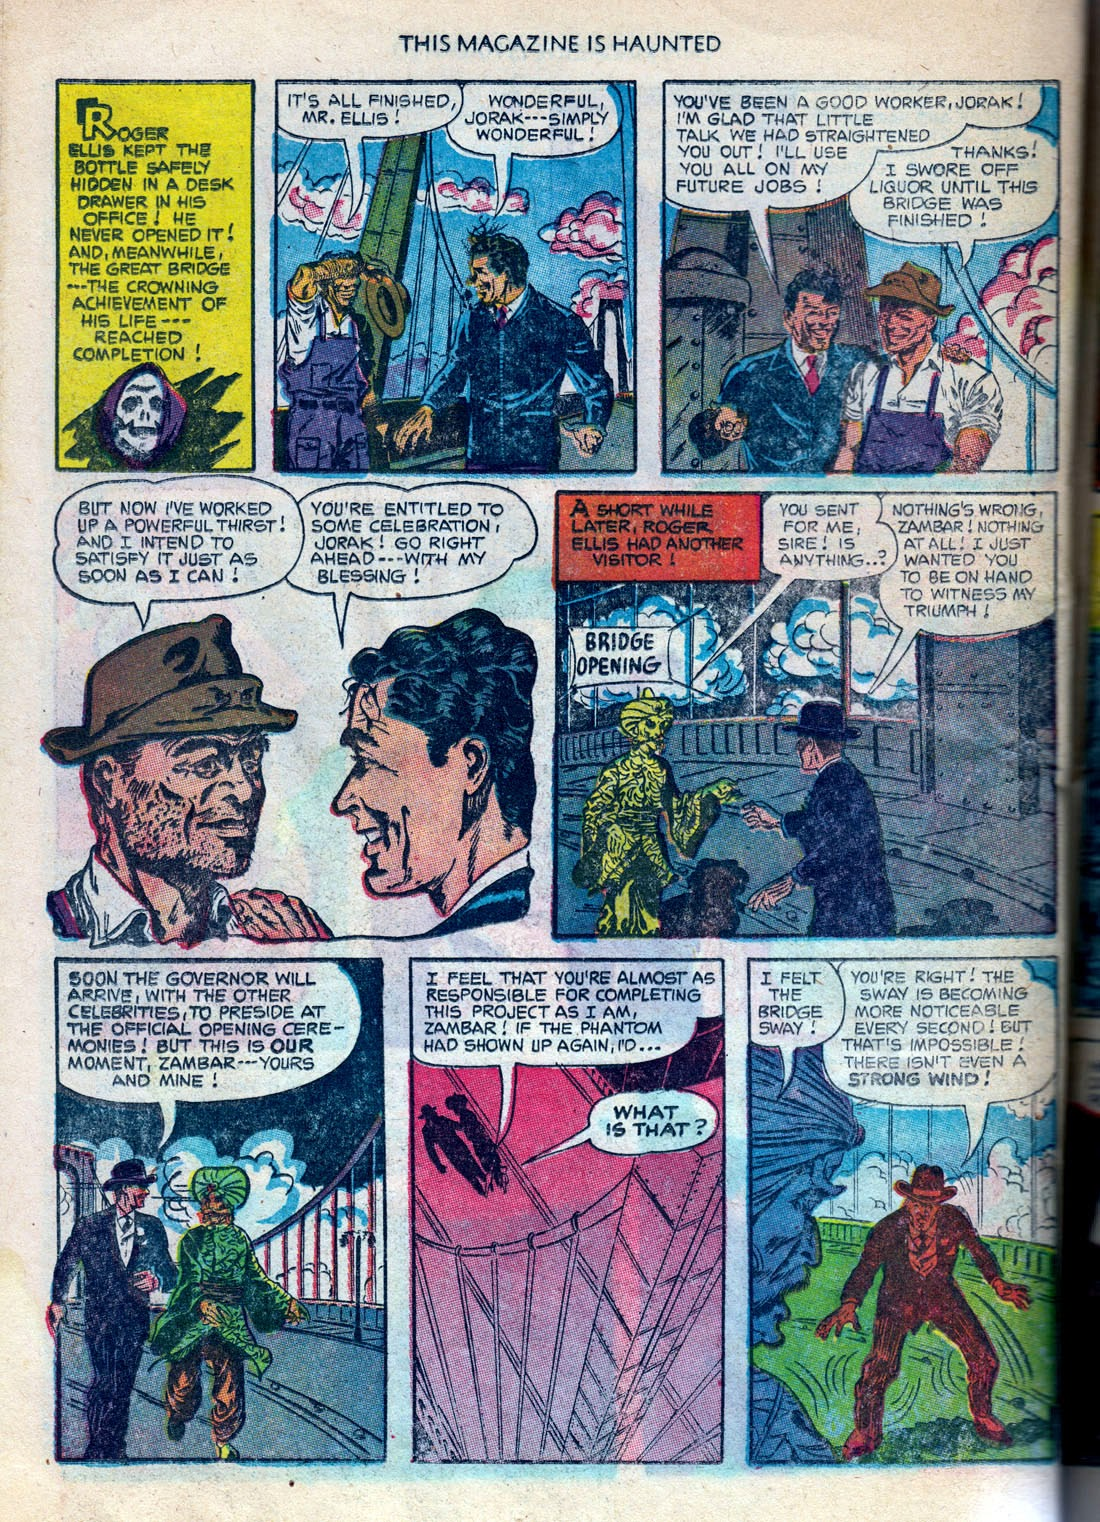 Read online This Magazine Is Haunted comic -  Issue #10 - 26